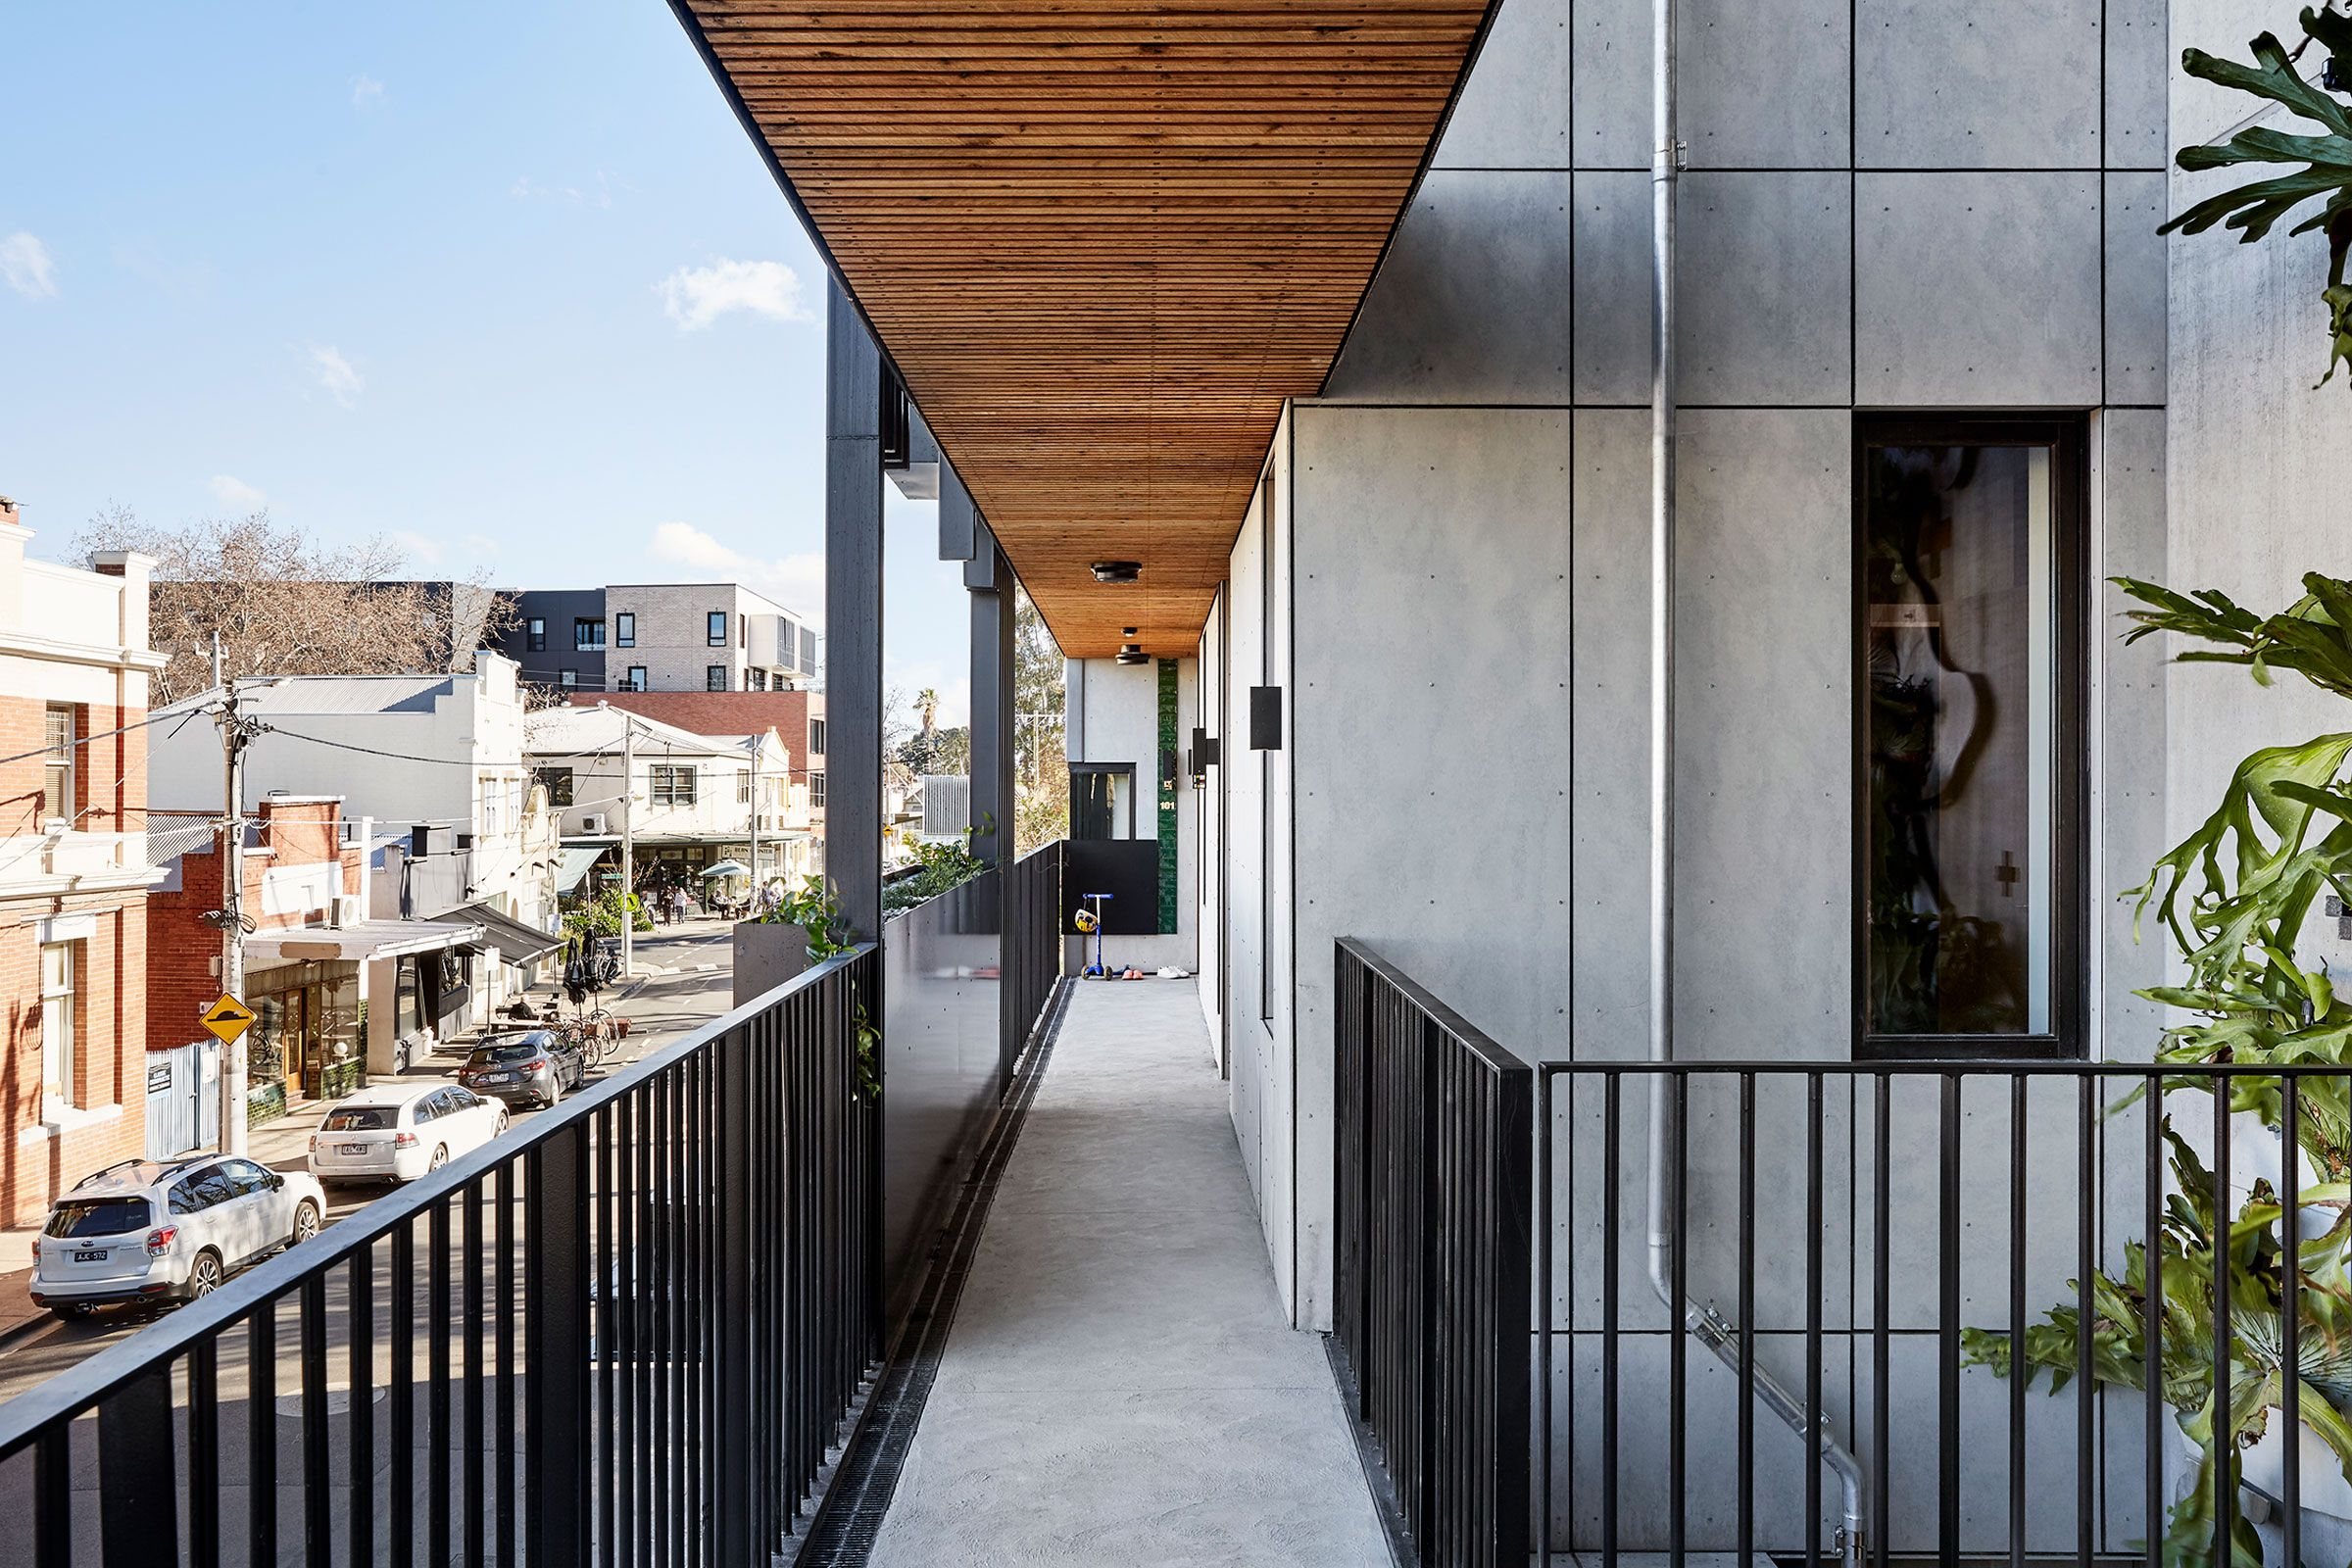 Tlp Nightingale 2 0 Hvh And Six Degrees Architects 05 Sustainable Home Architect House Design